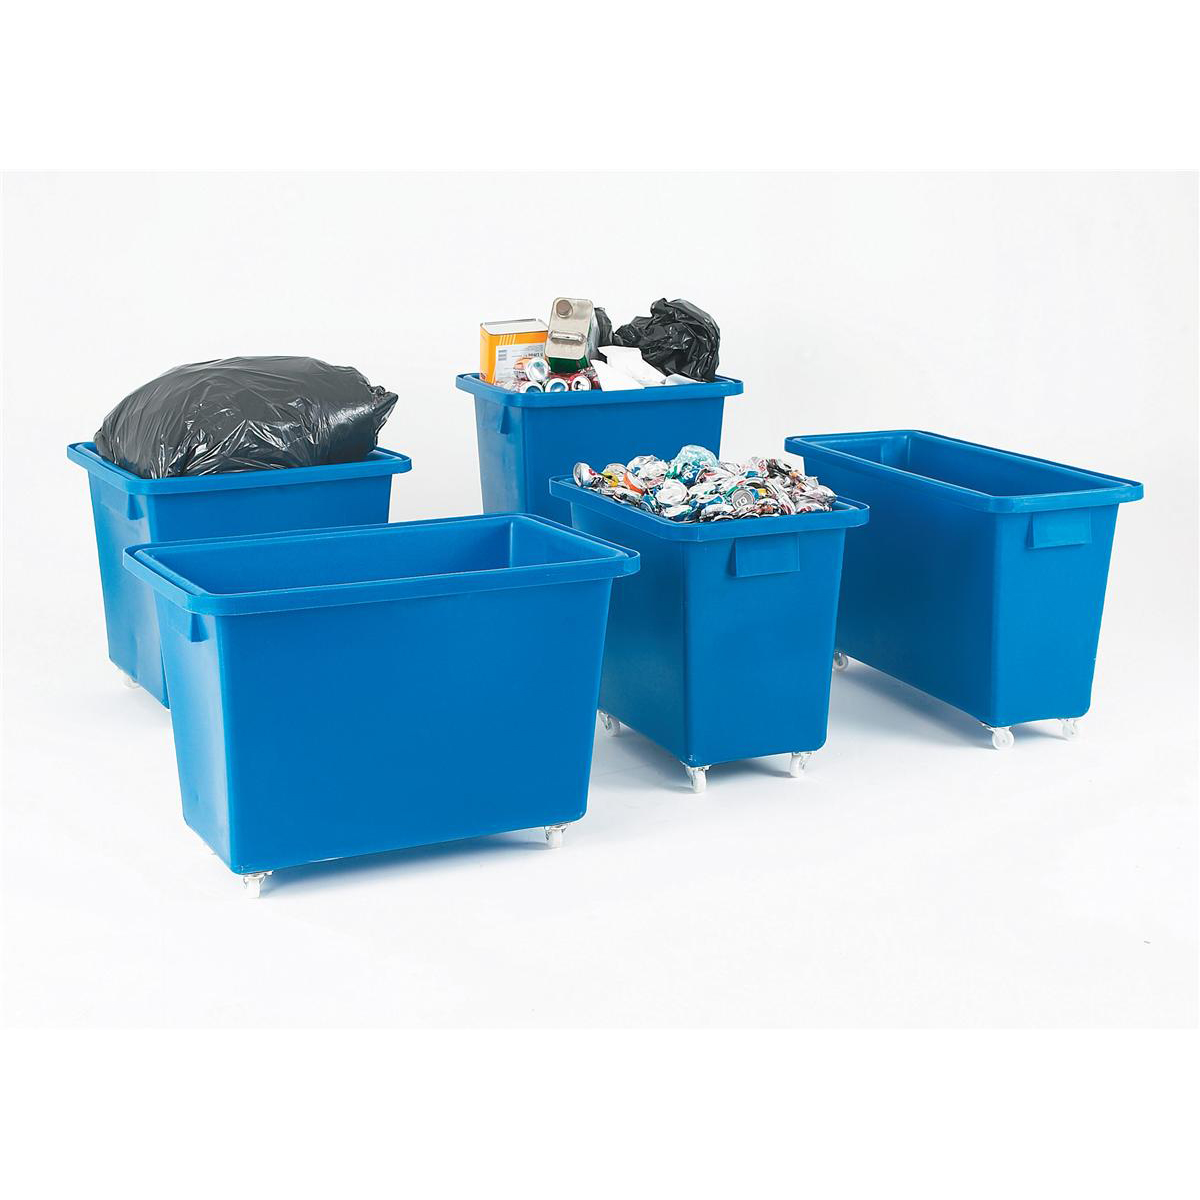 Bottle Skip Four Castors Medium Density Polyethylene 610x405x560mm Royal Blue